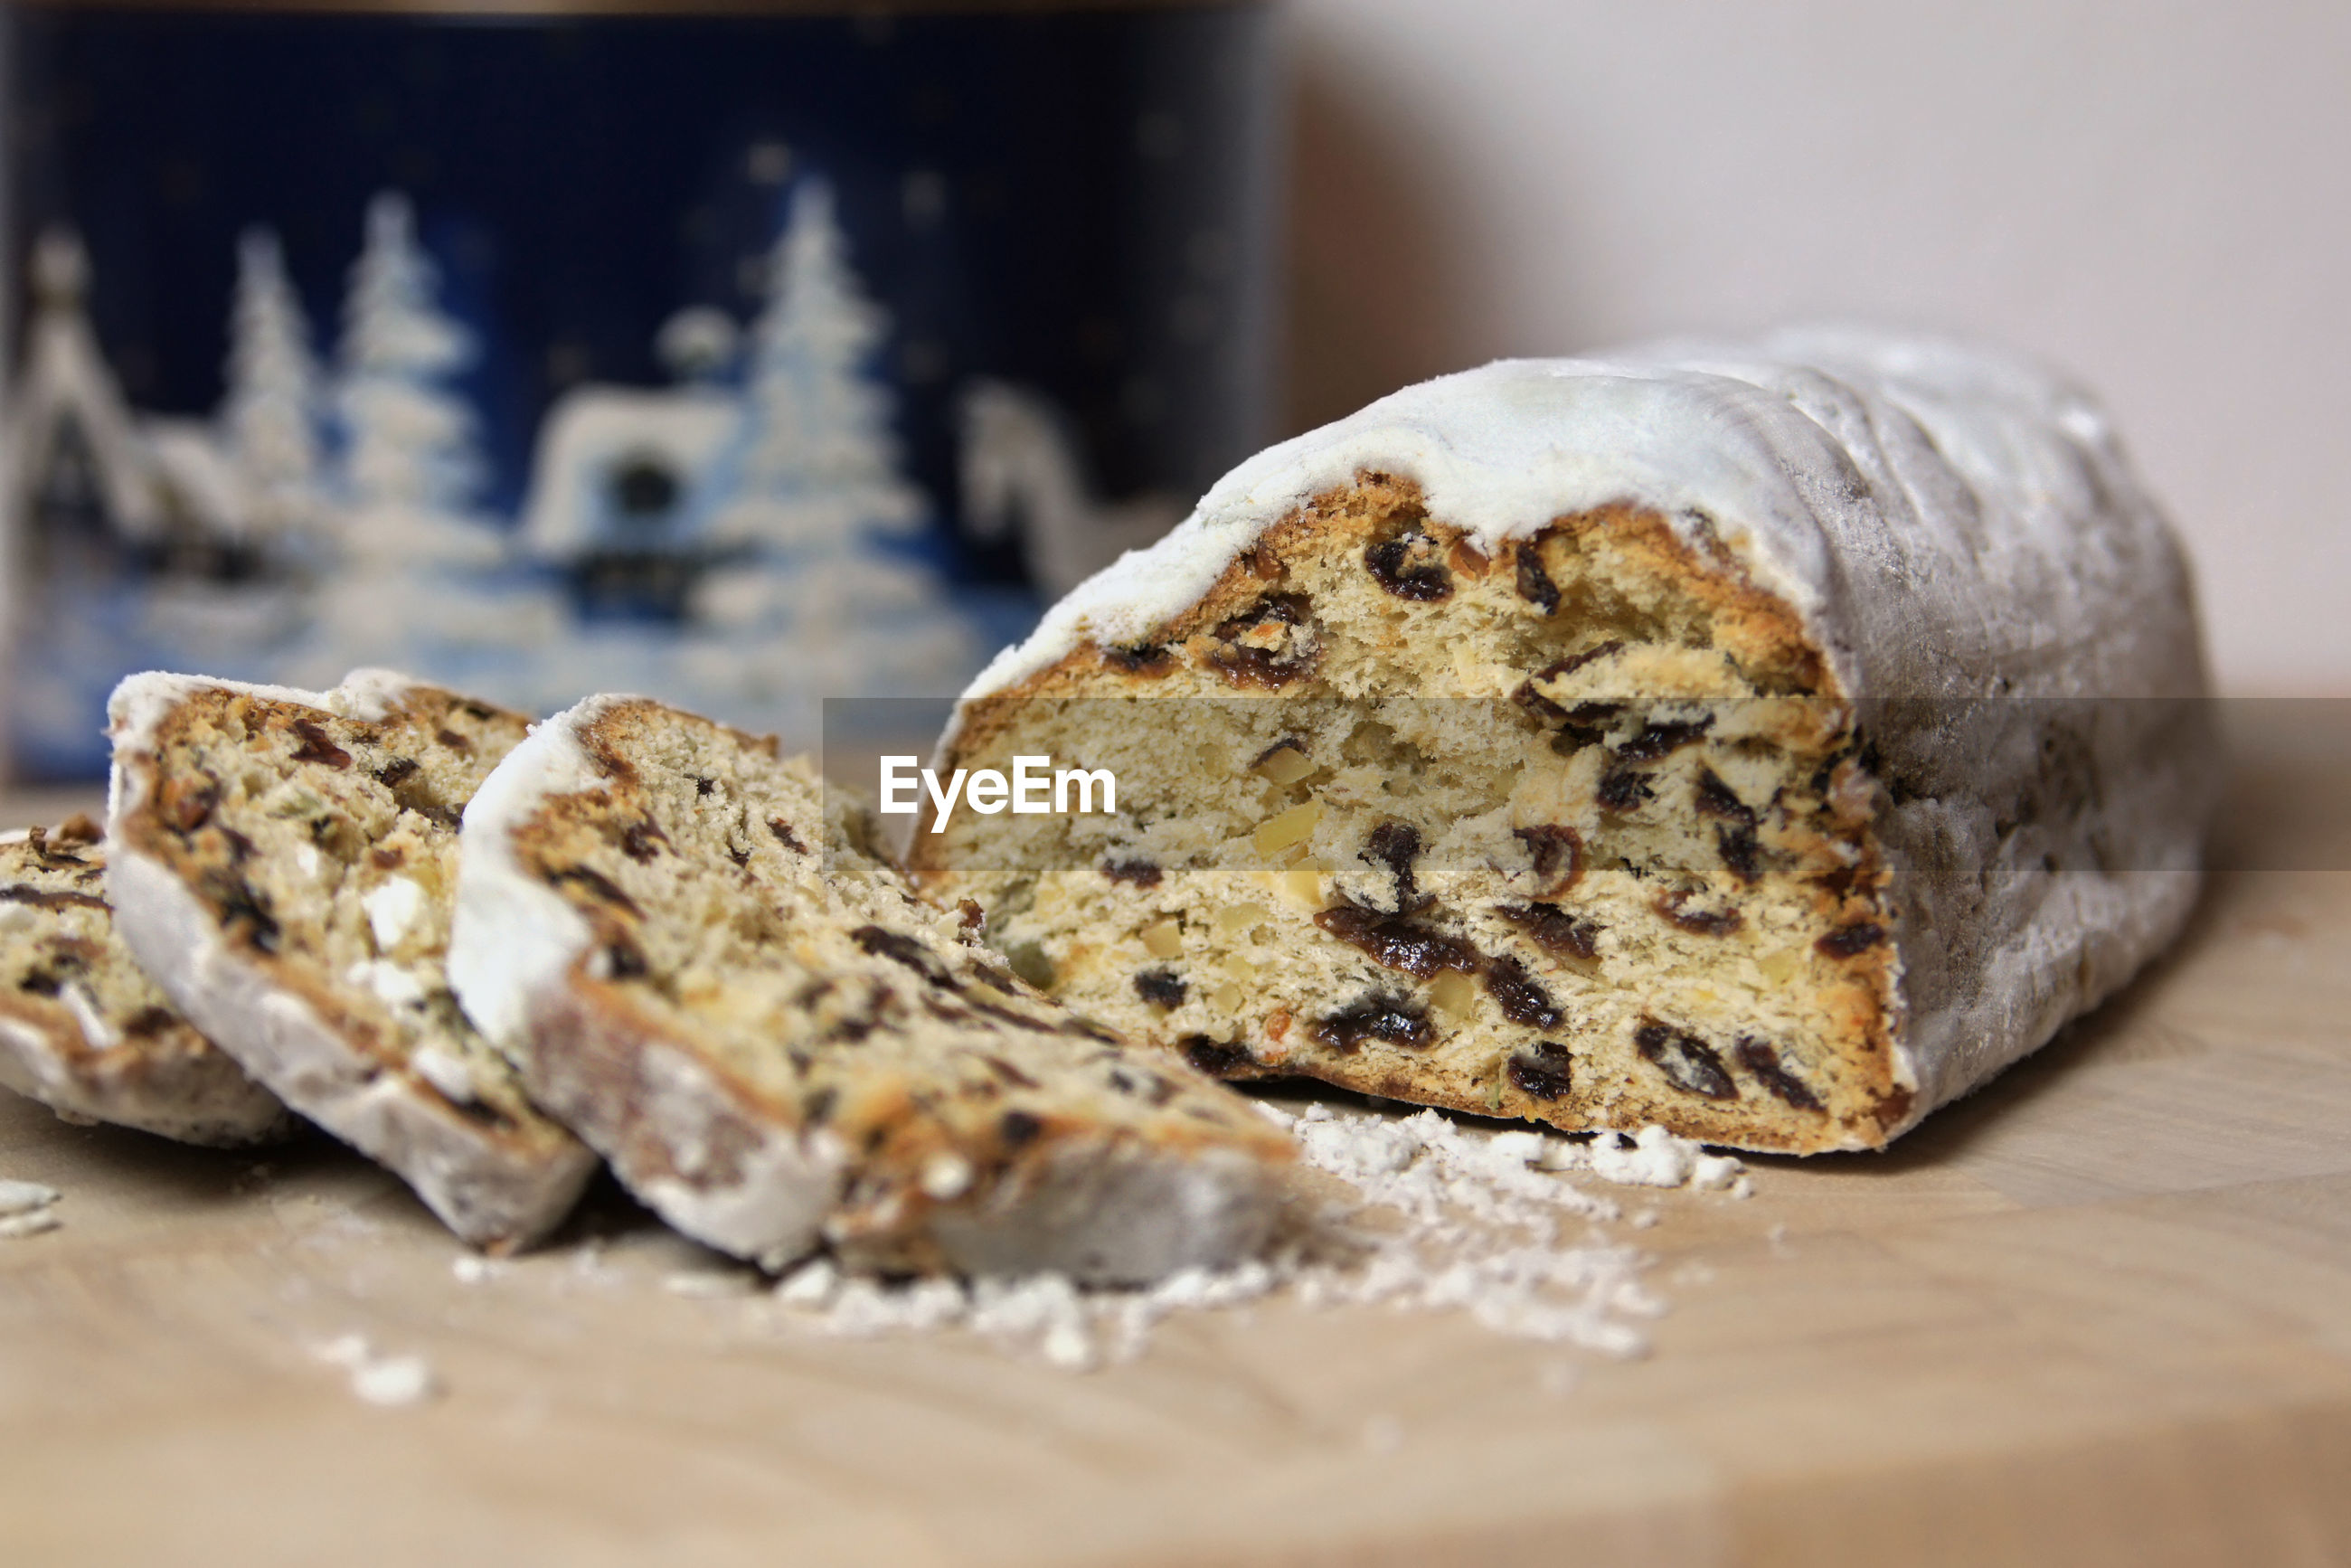 CLOSE-UP OF OBJECT ON TABLE